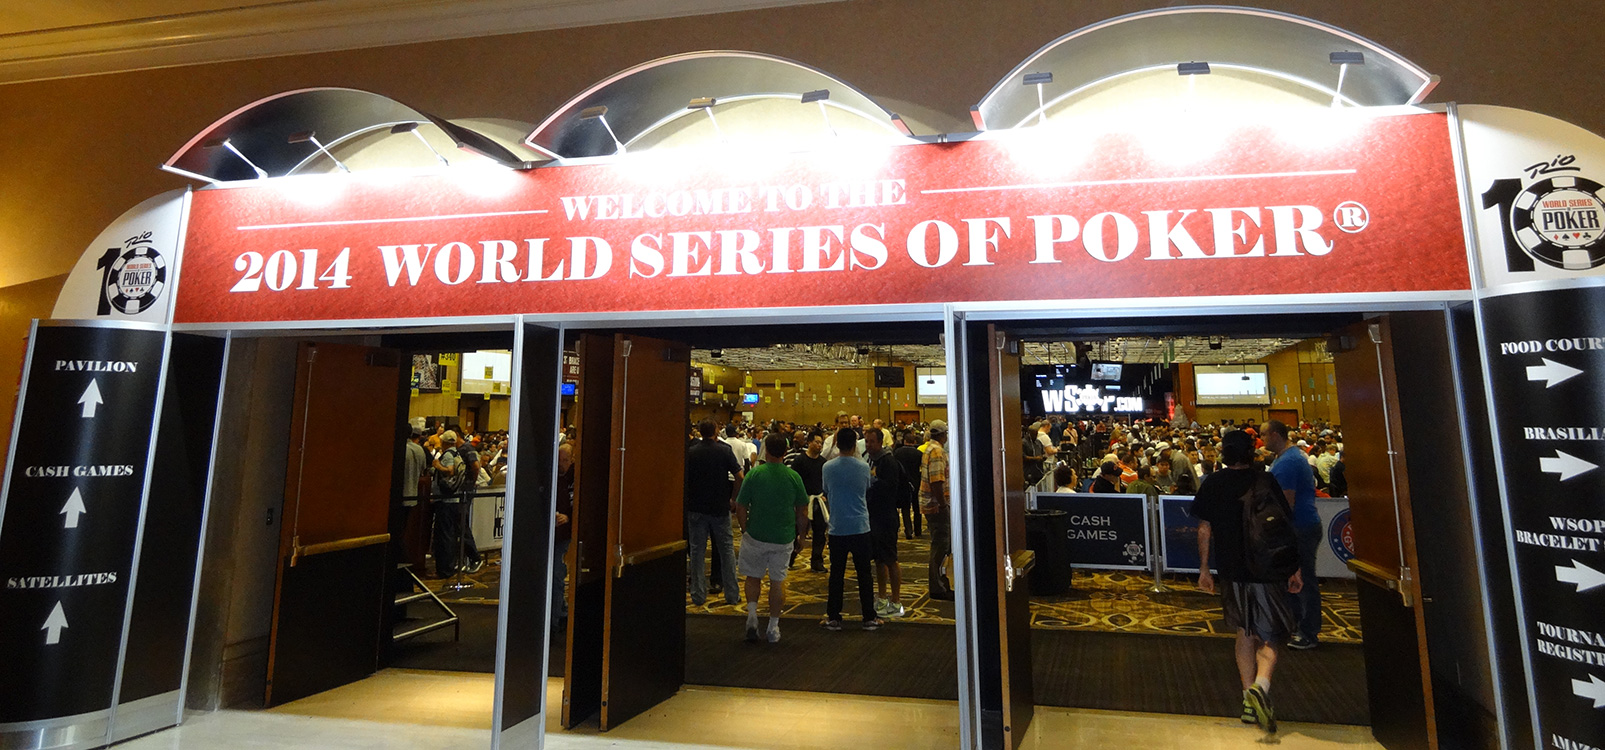 Entrance to World Series of Poker Main Room, WSOP 2014 Vegas